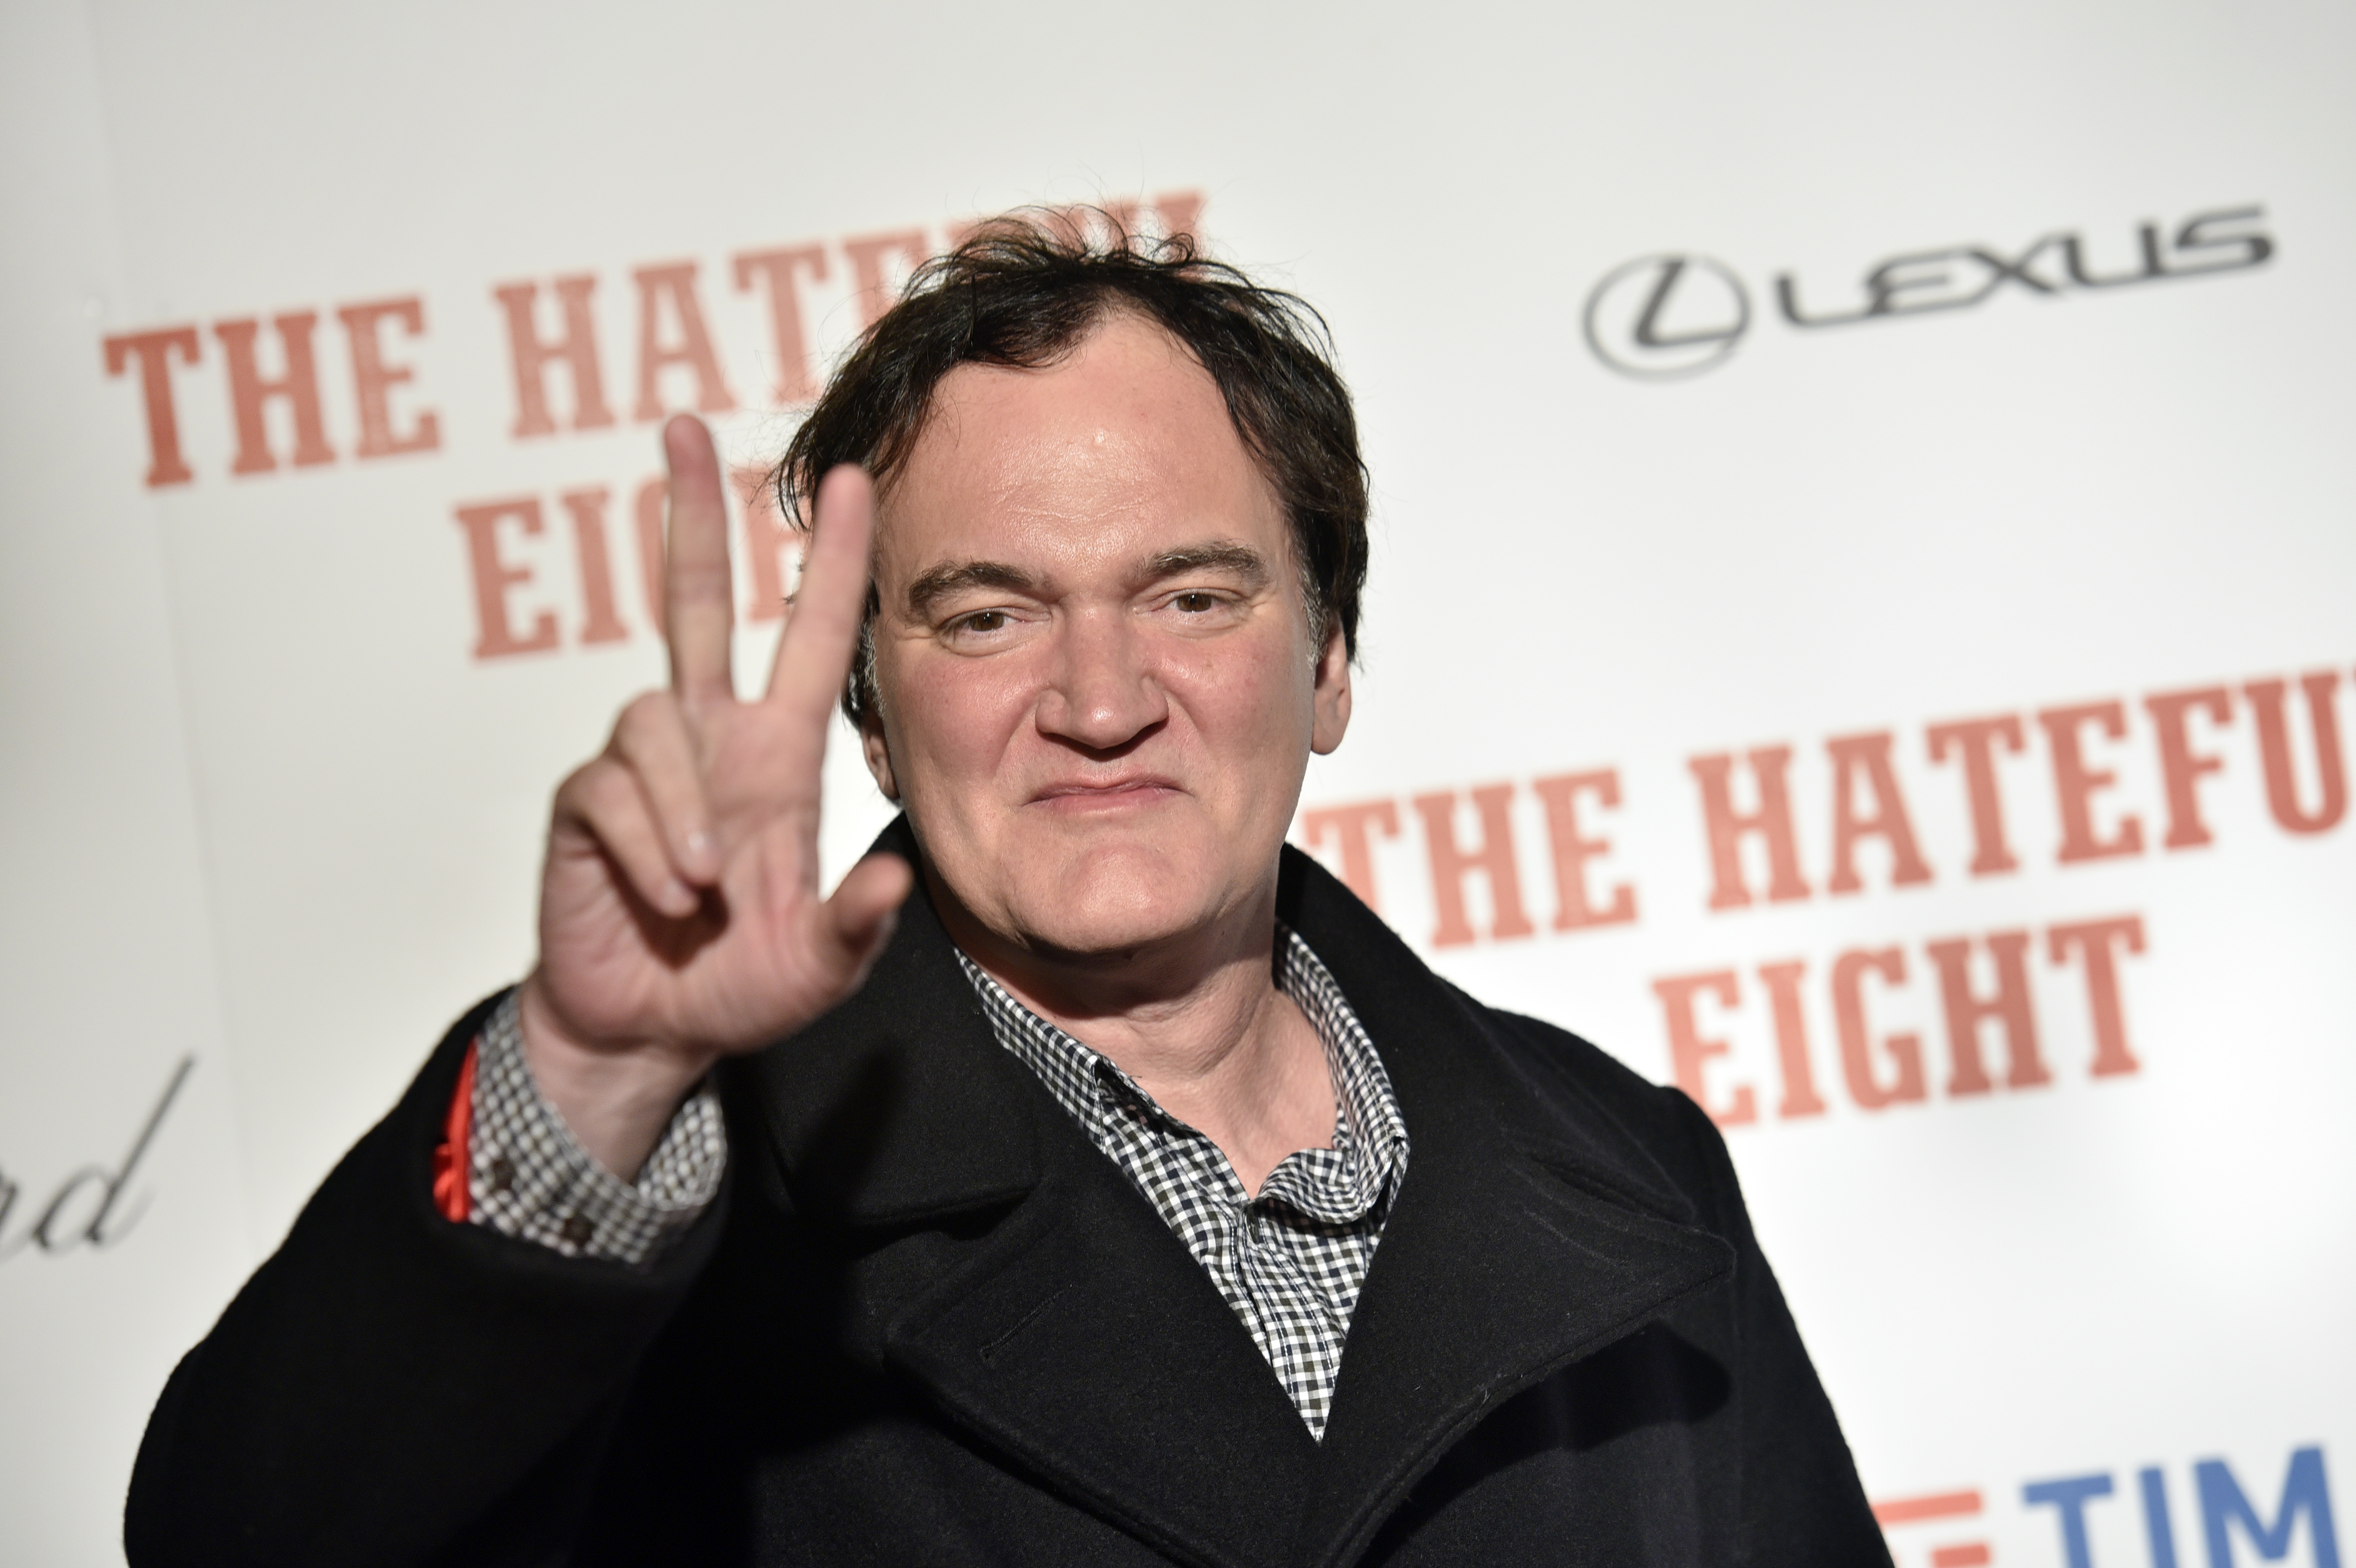 Quentin Tarantino's 'Star Trek' Not Dead Yet, Director Says 'It's A Very Big Possibility'